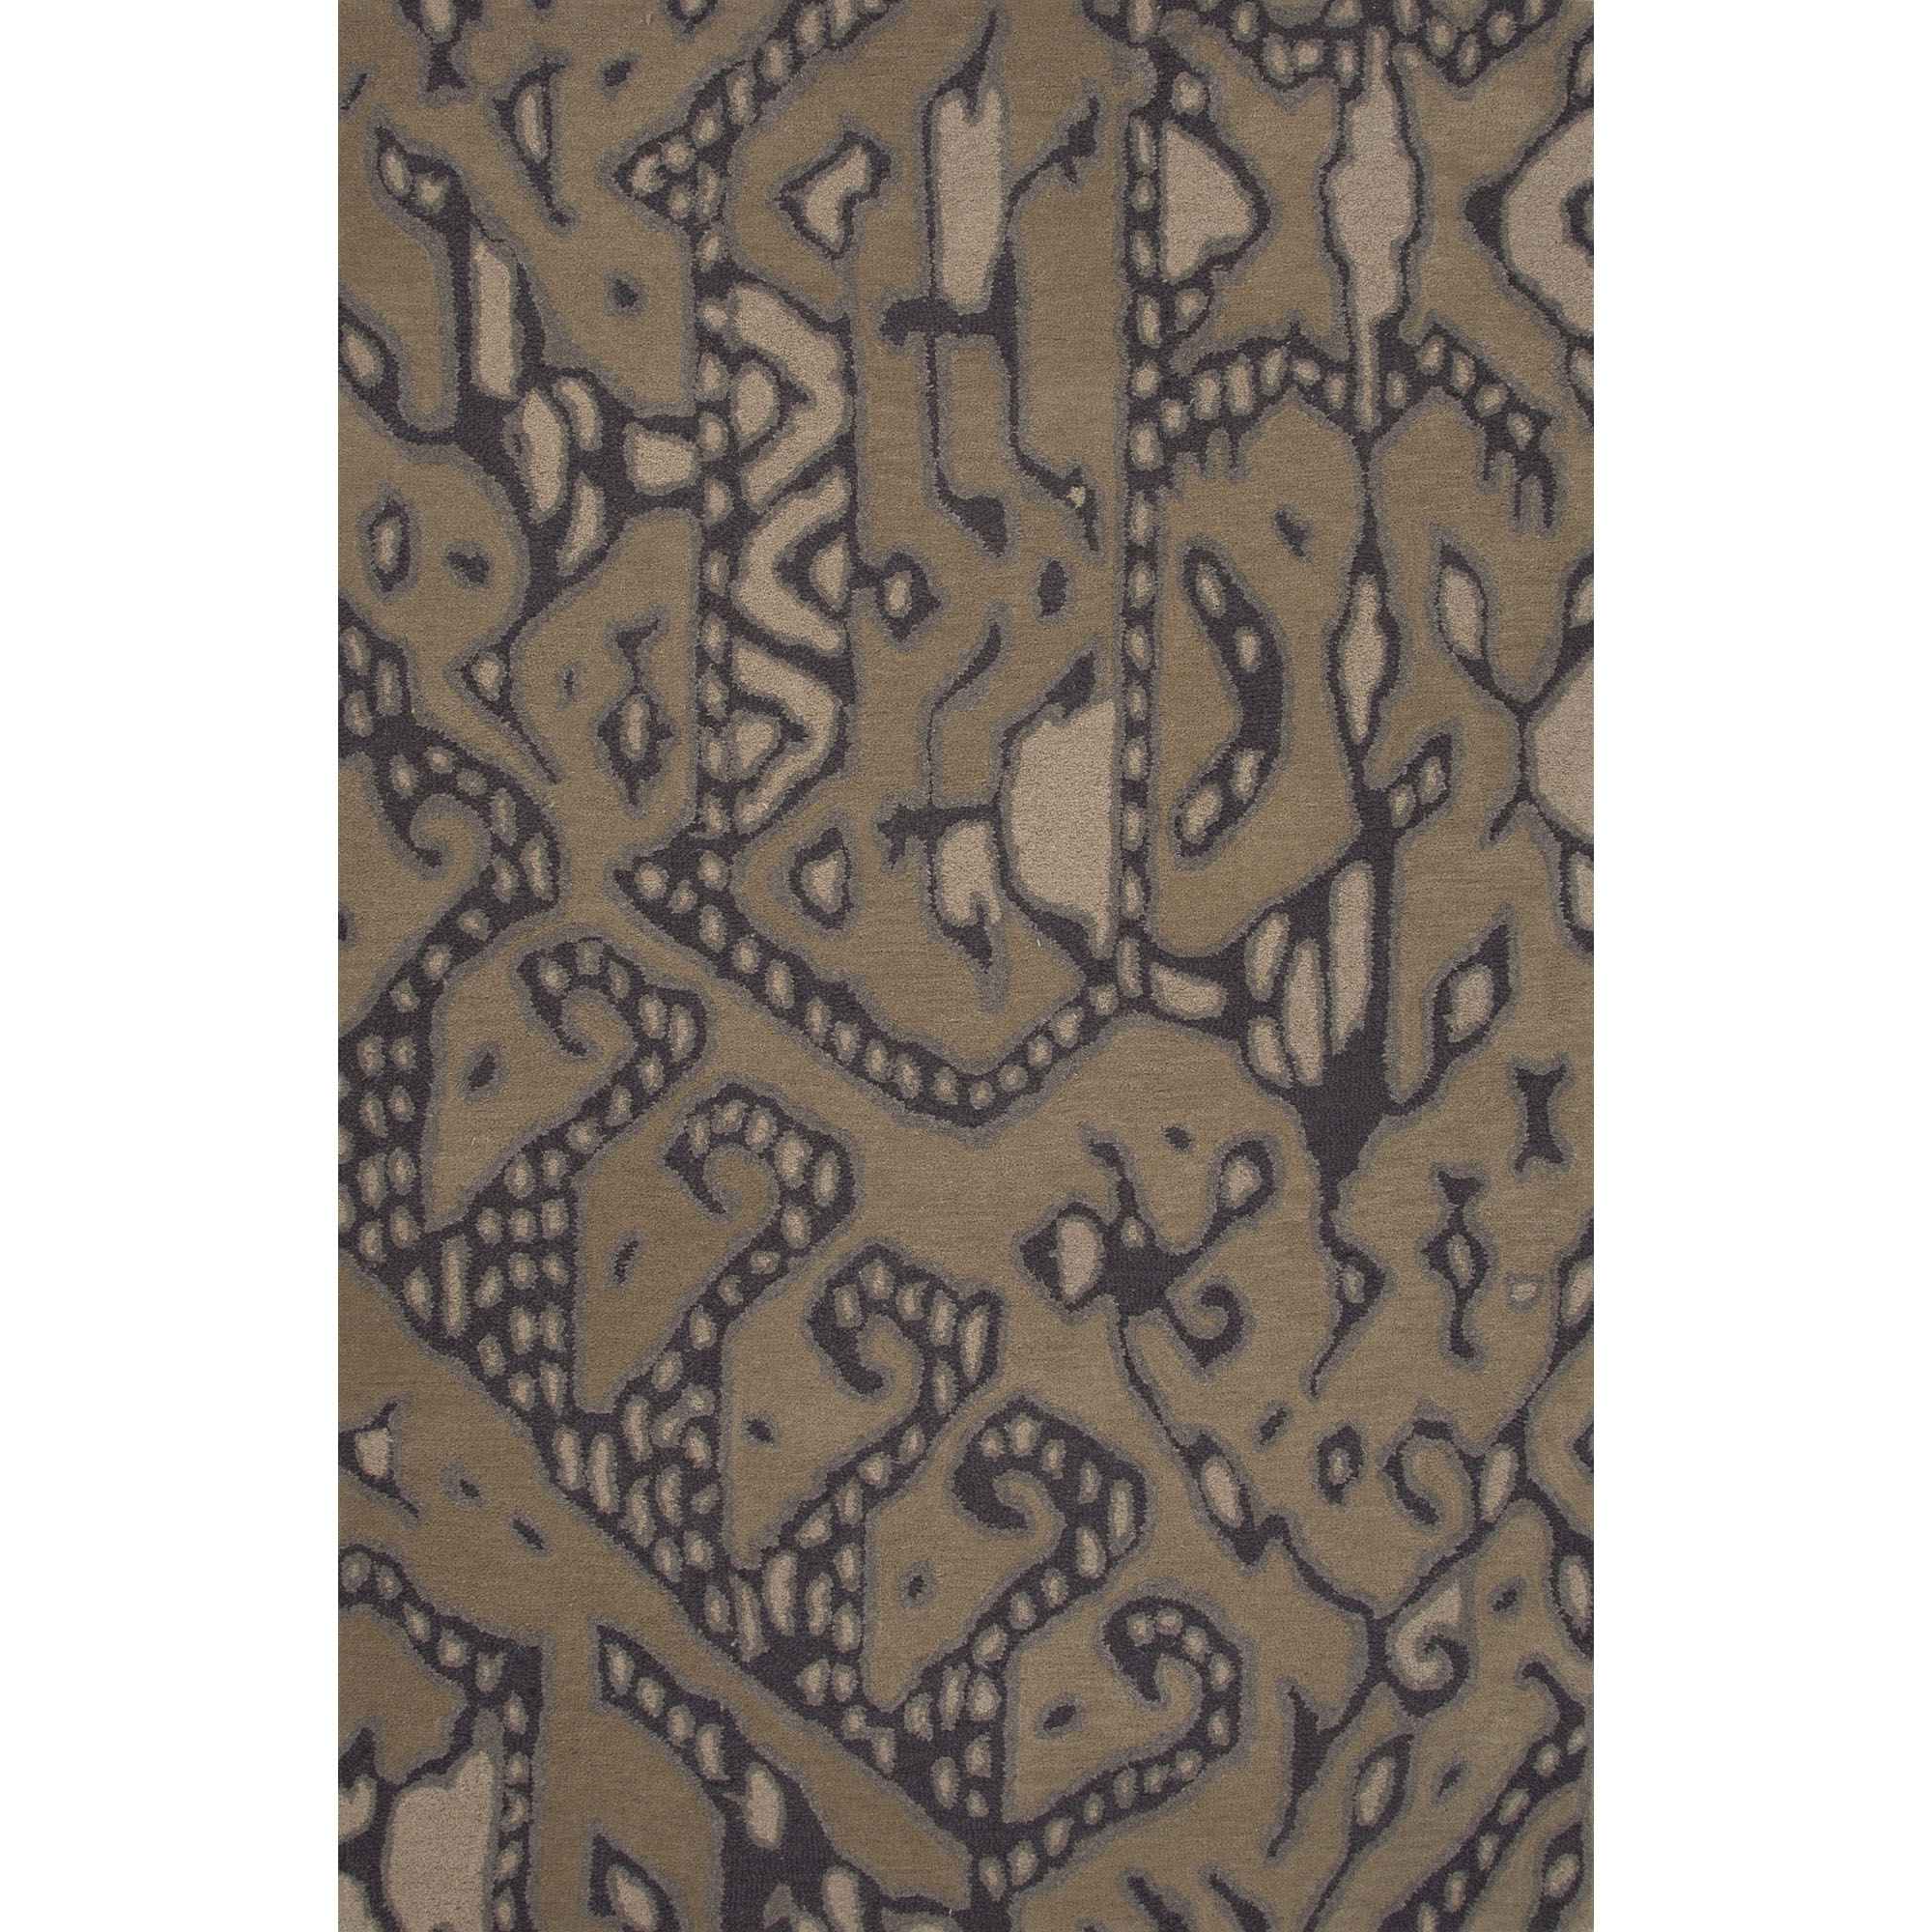 JAIPUR Rugs Traditions Made Modern Tufted 8 x 11 Rug - Item Number: RUG122198